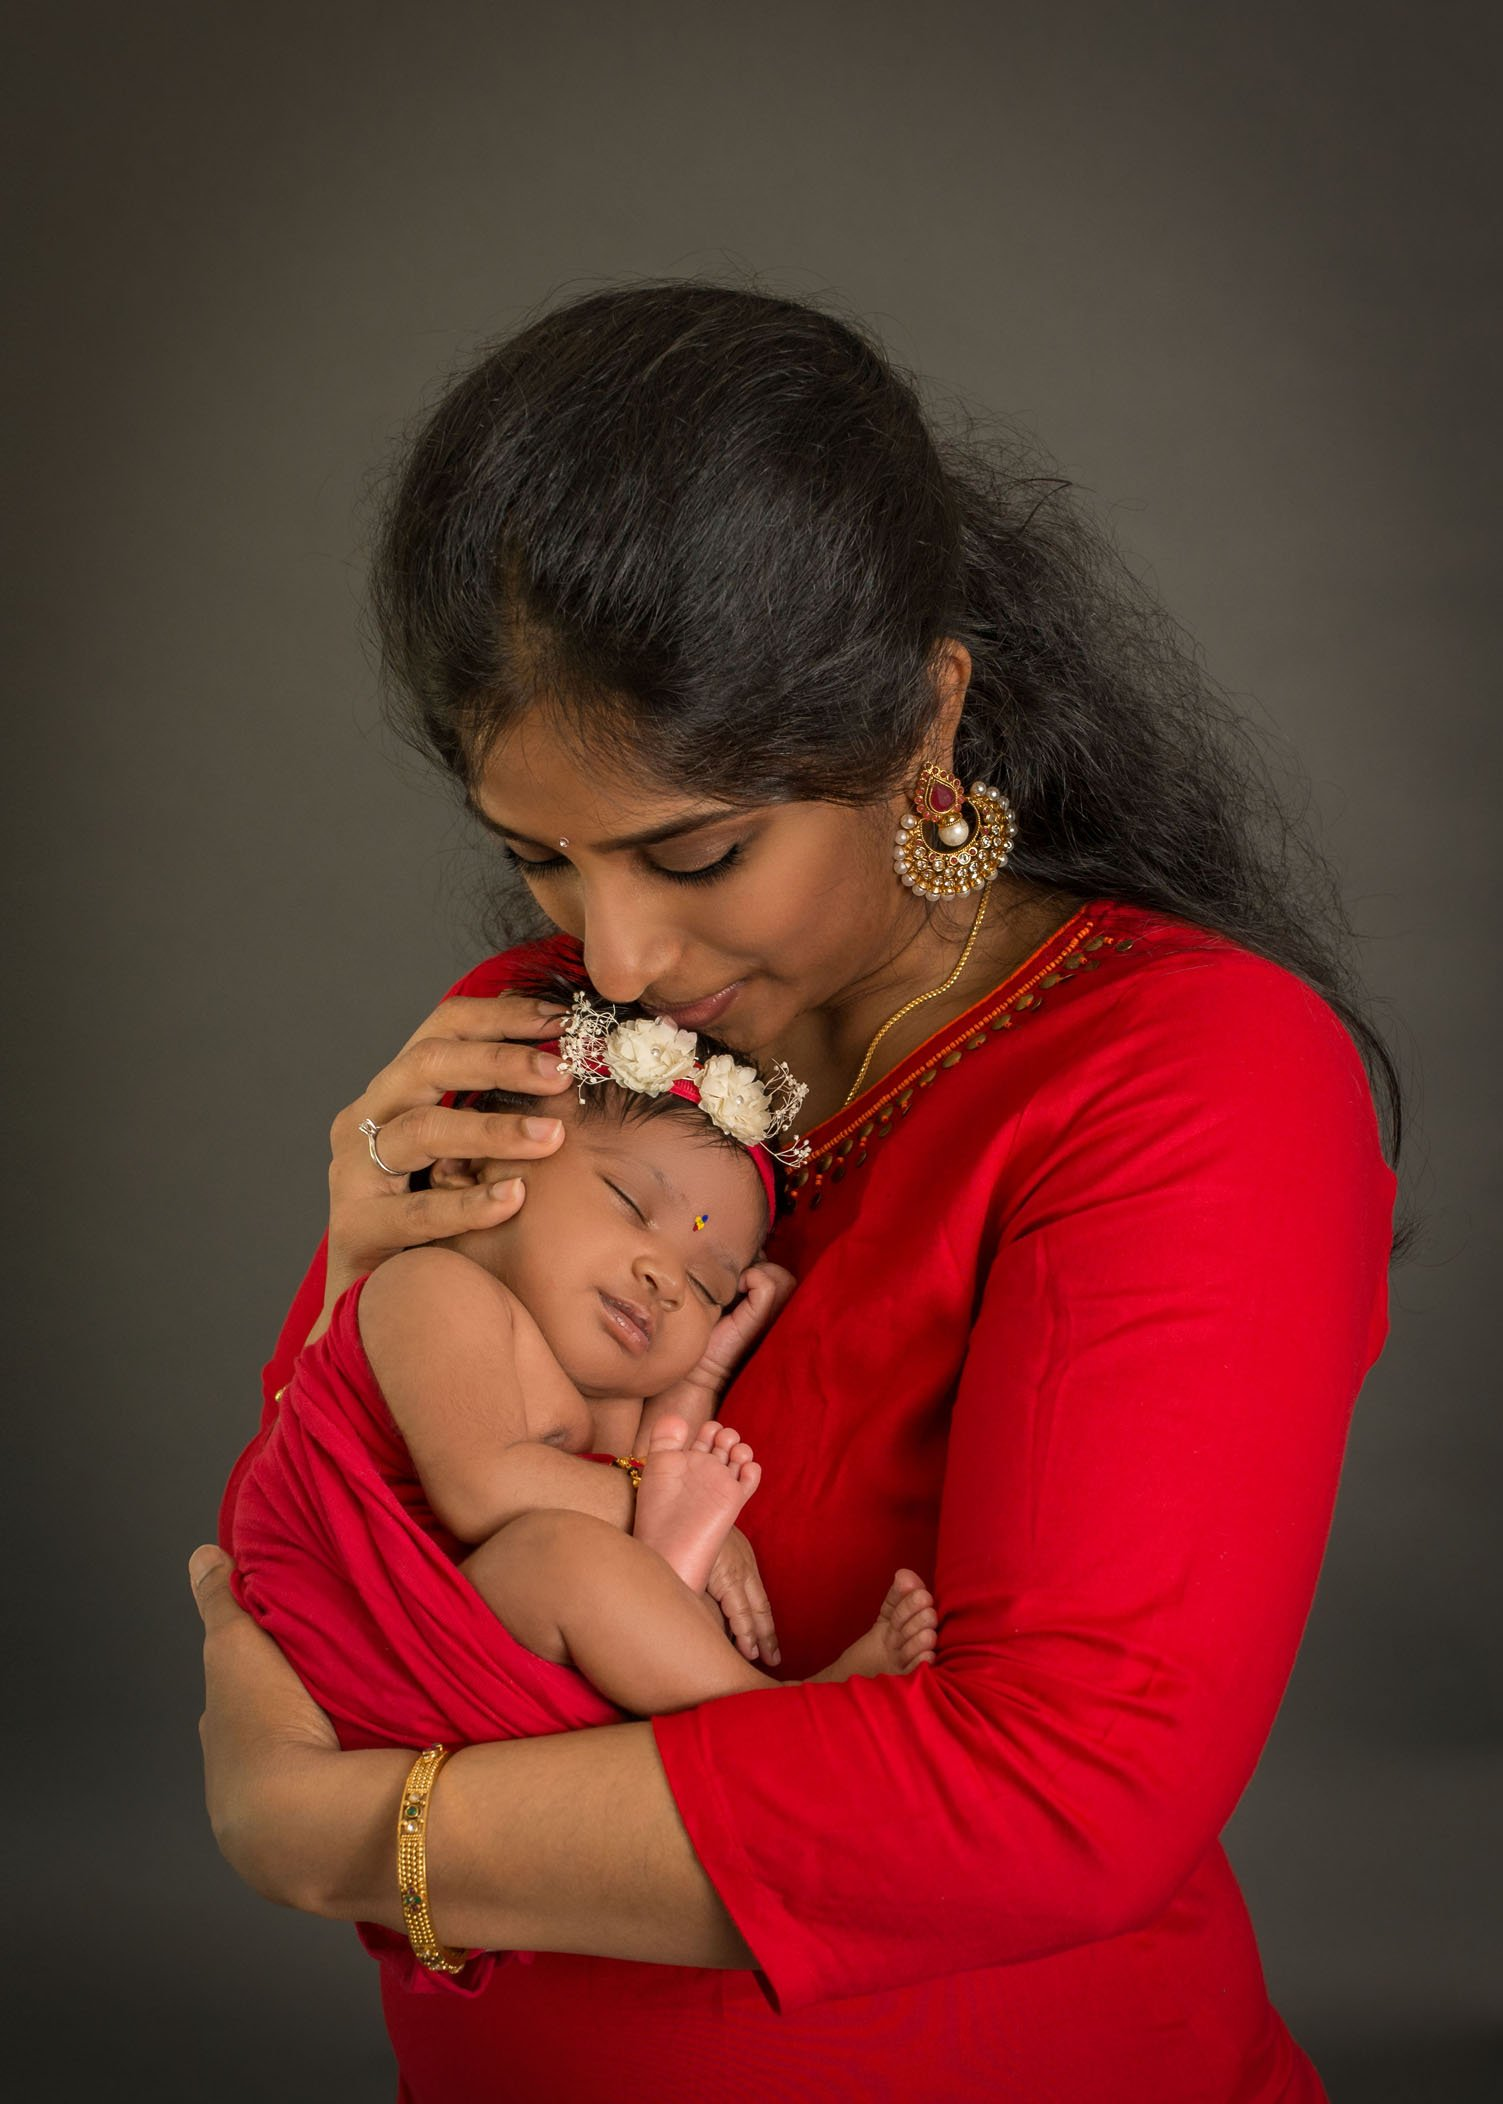 Nihira ~ Vibrant Indian Newborn Photos | Glastonbury, CT ...